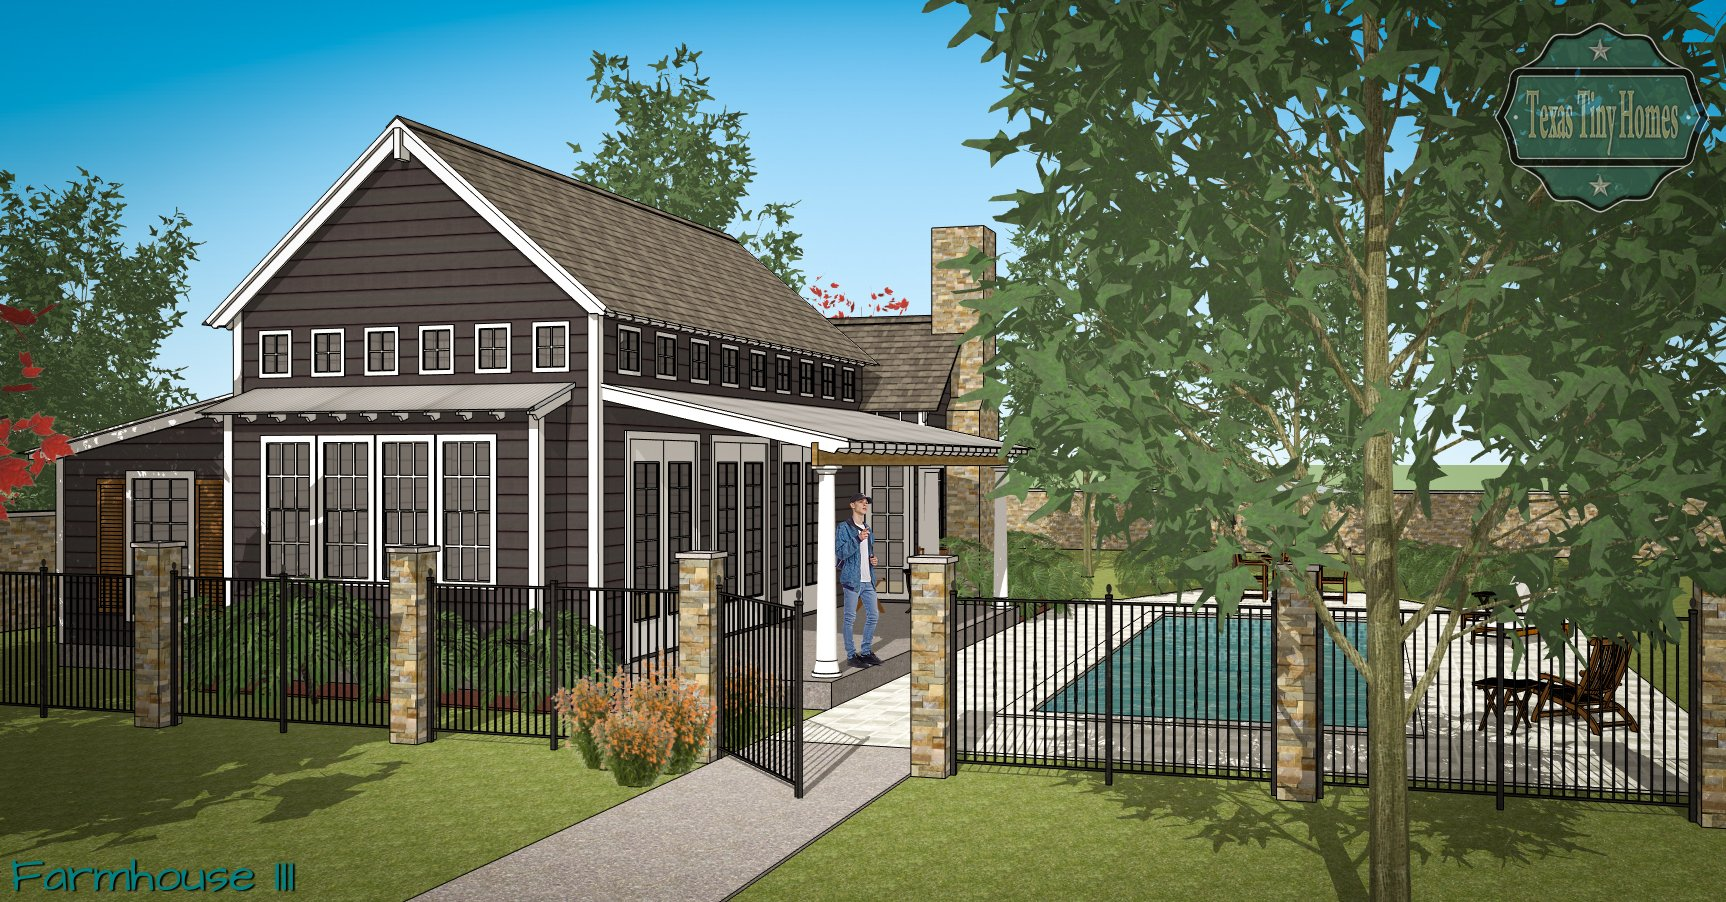 New Homes Granbury, Texas Tiny Homes, Small Homes Texas, Little Luxury Homes, Small Luxury Homes, Designer Luxury Homes